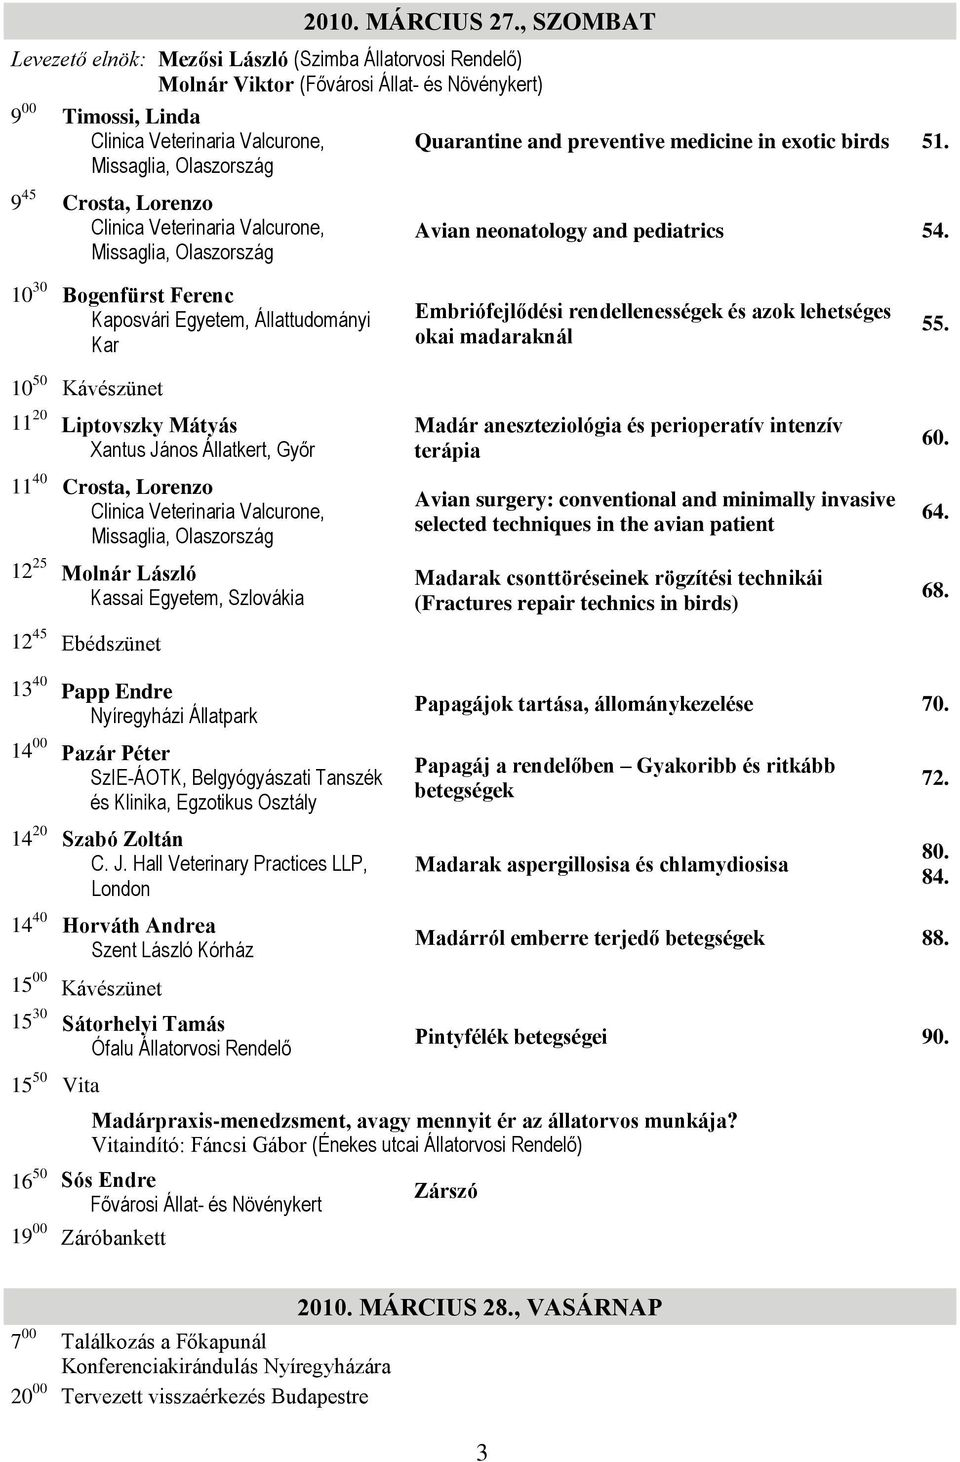 and preventive medicine in exotic birds 51. 9 45 Crosta, Lorenzo Clinica Veterinaria Valcurone, Missaglia, Olaszország Avian neonatology and pediatrics 54.